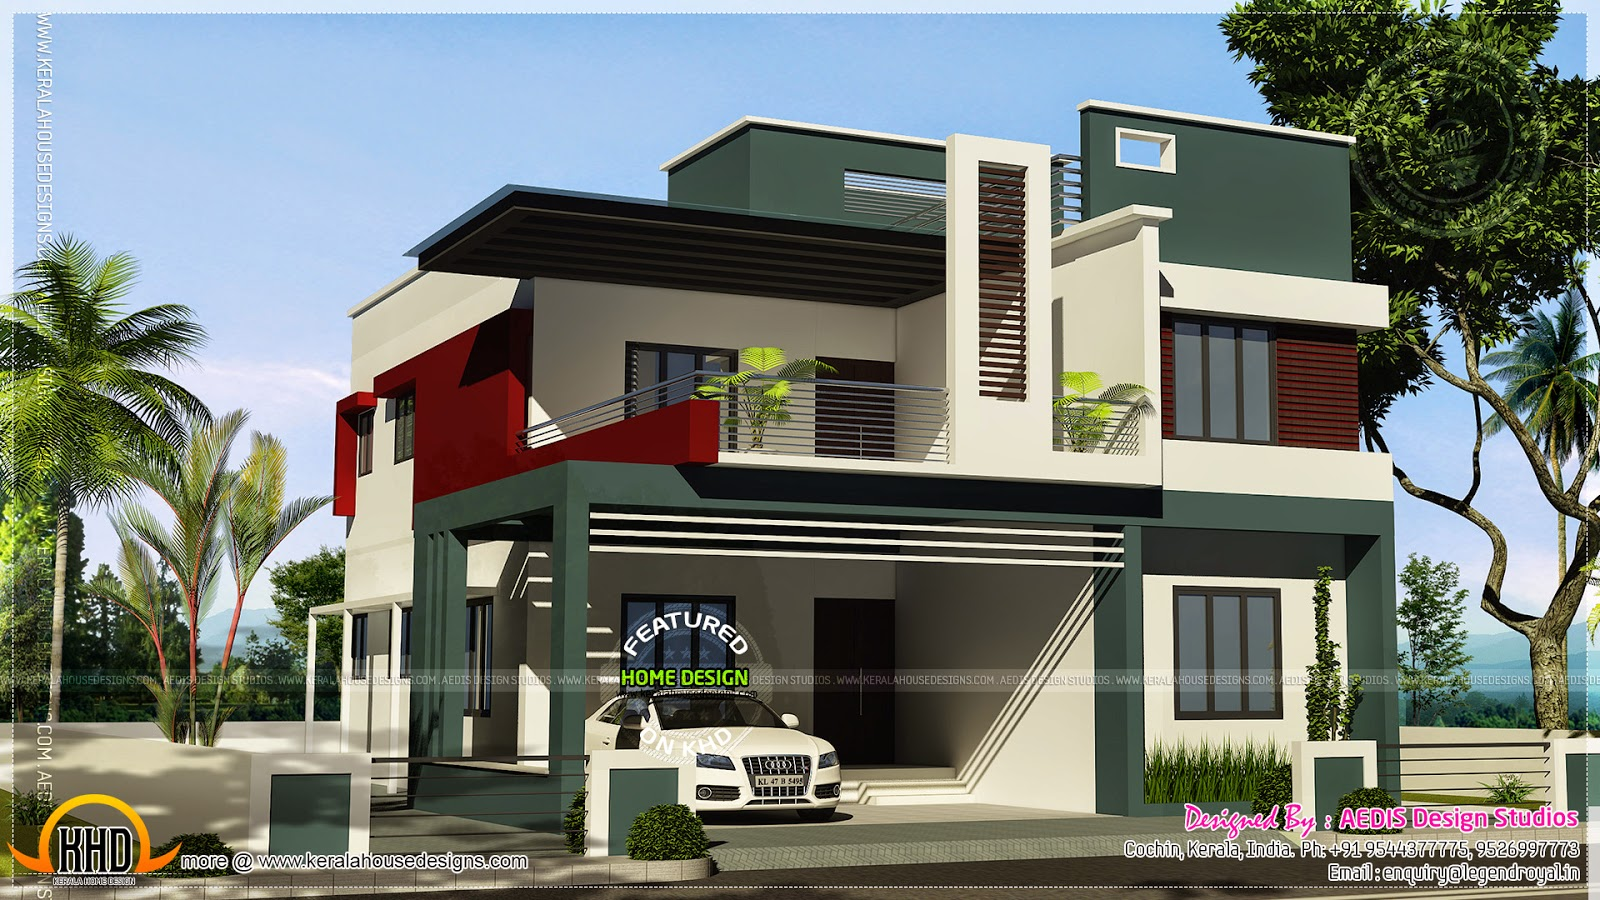 June 2014 kerala home design and floor plans for Independent house designs in india